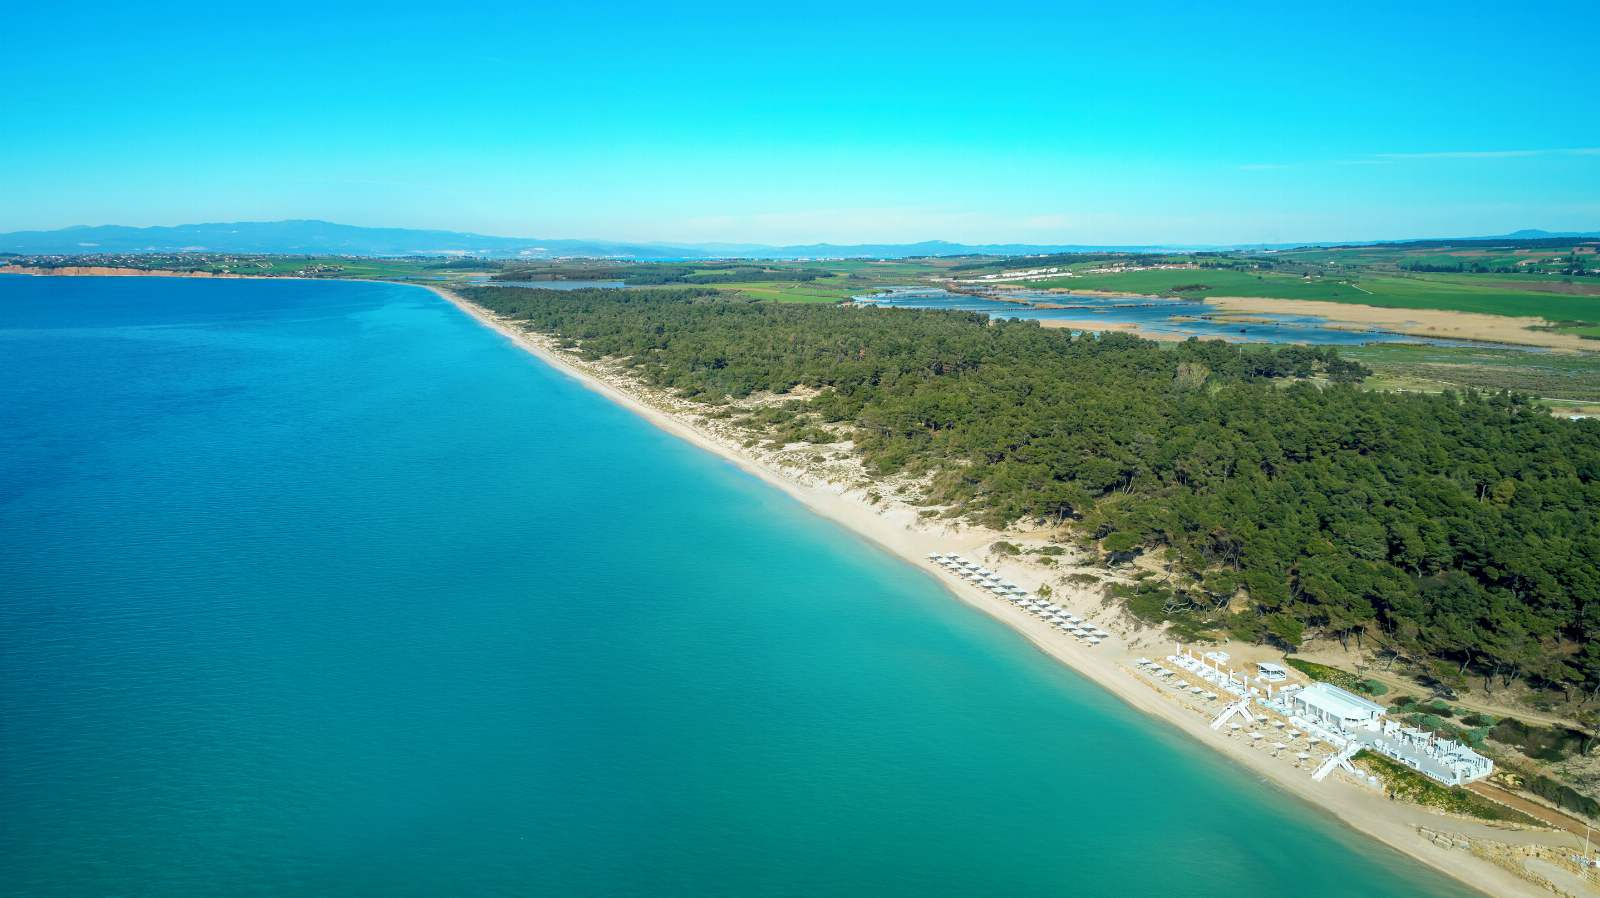 Sani Beach Aerial View